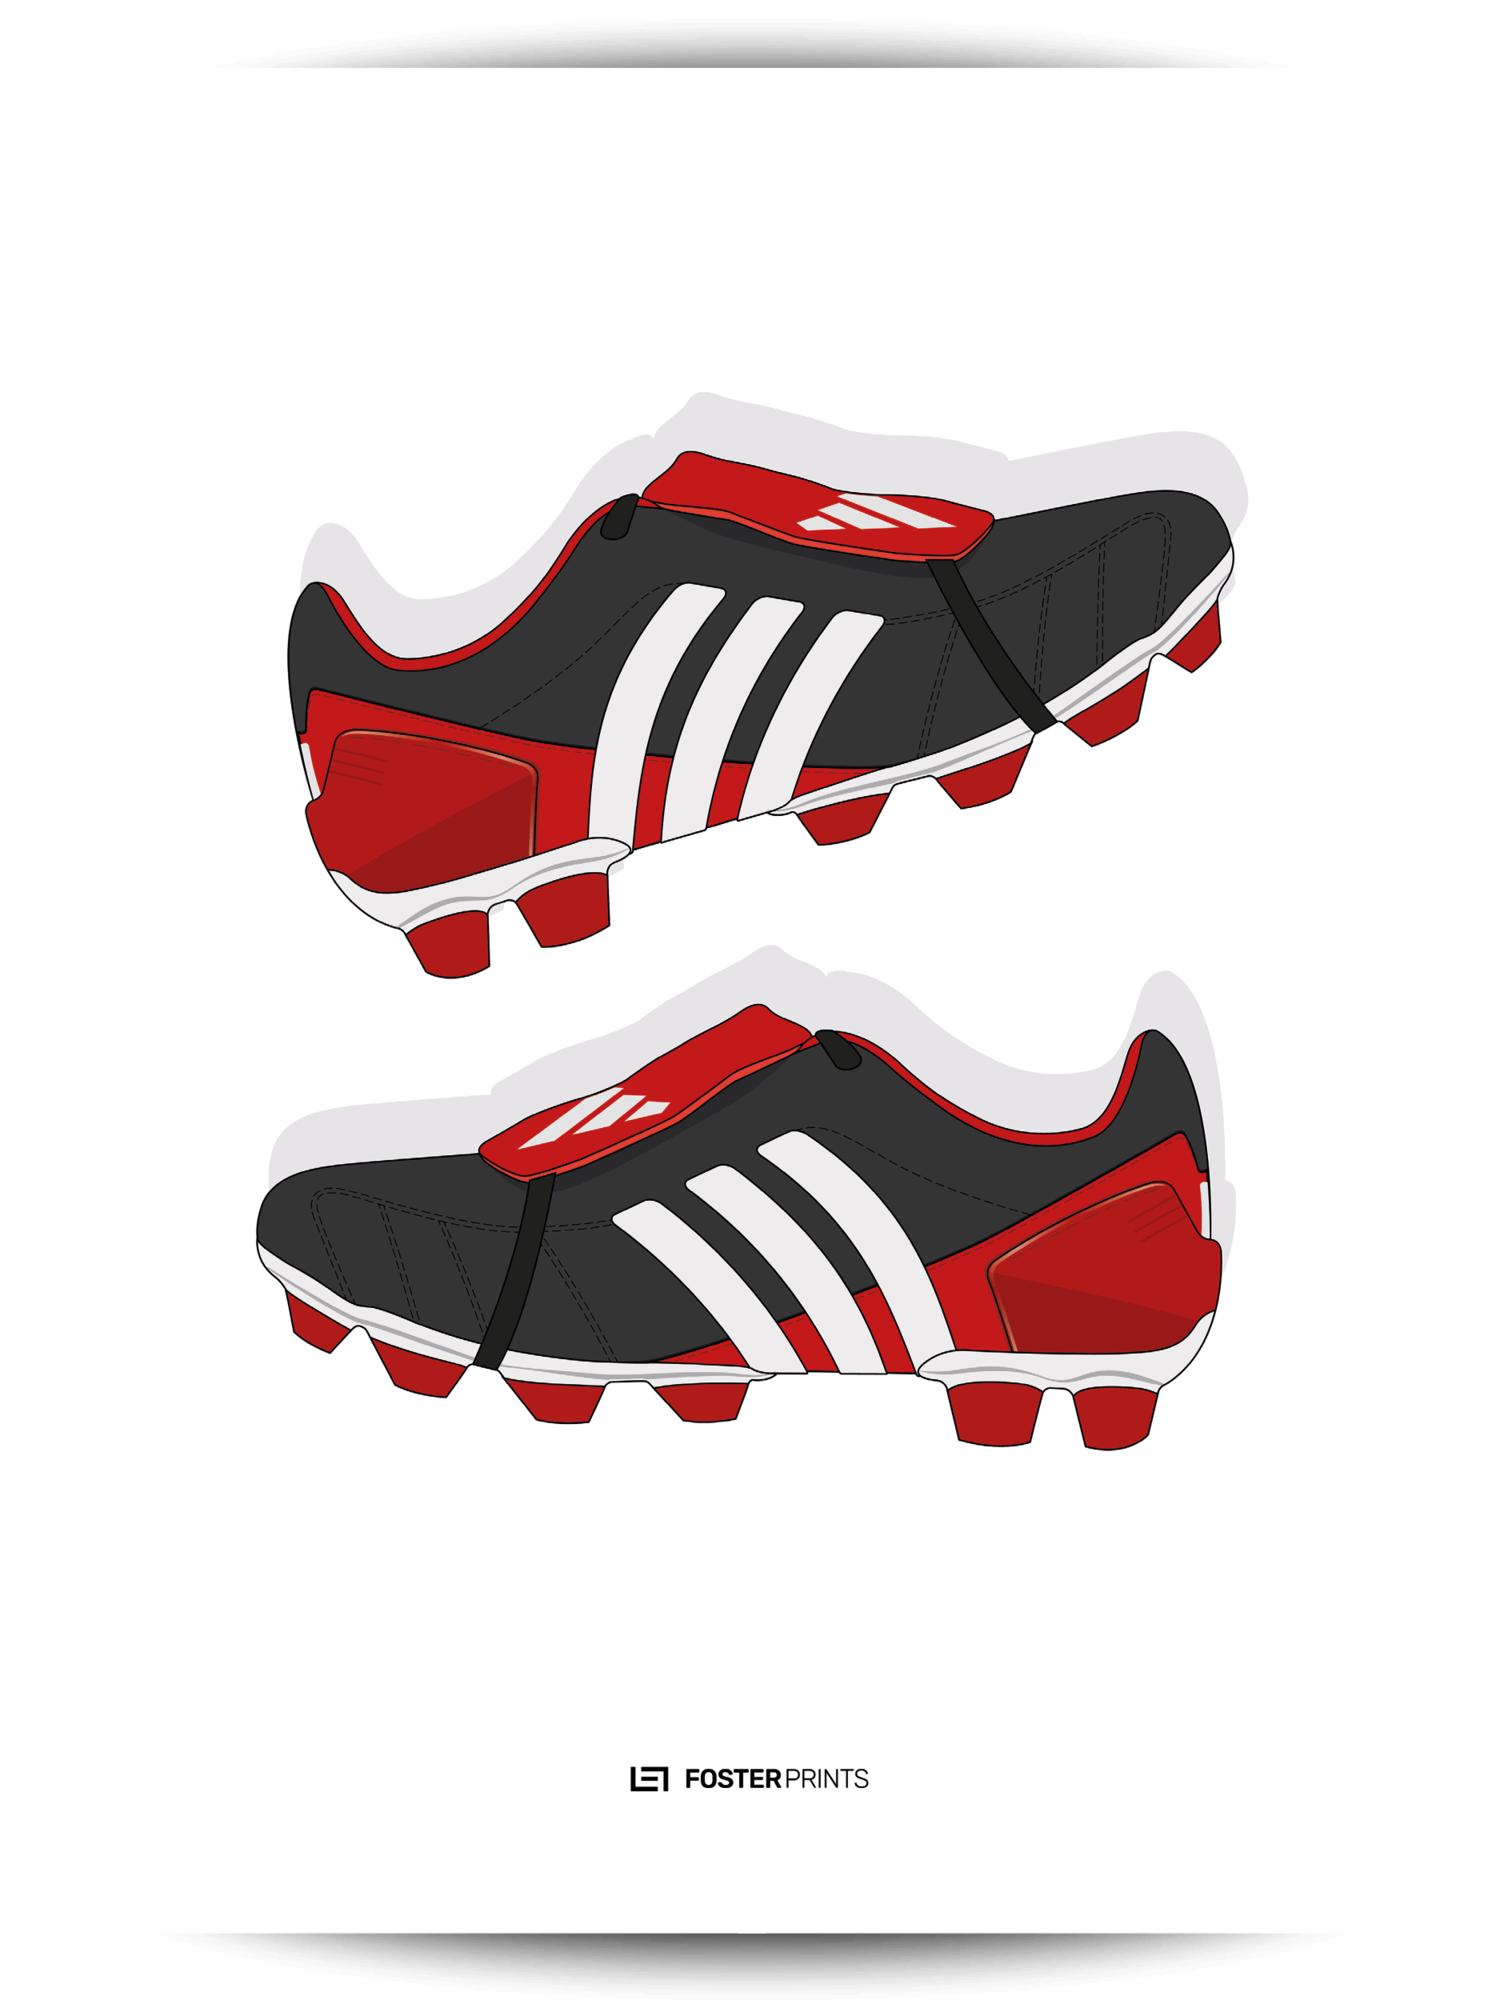 f526e5325a87 Adidas Predator Mania Red/Black Football Poster — Foster Prints -  Illustrated Football Posters